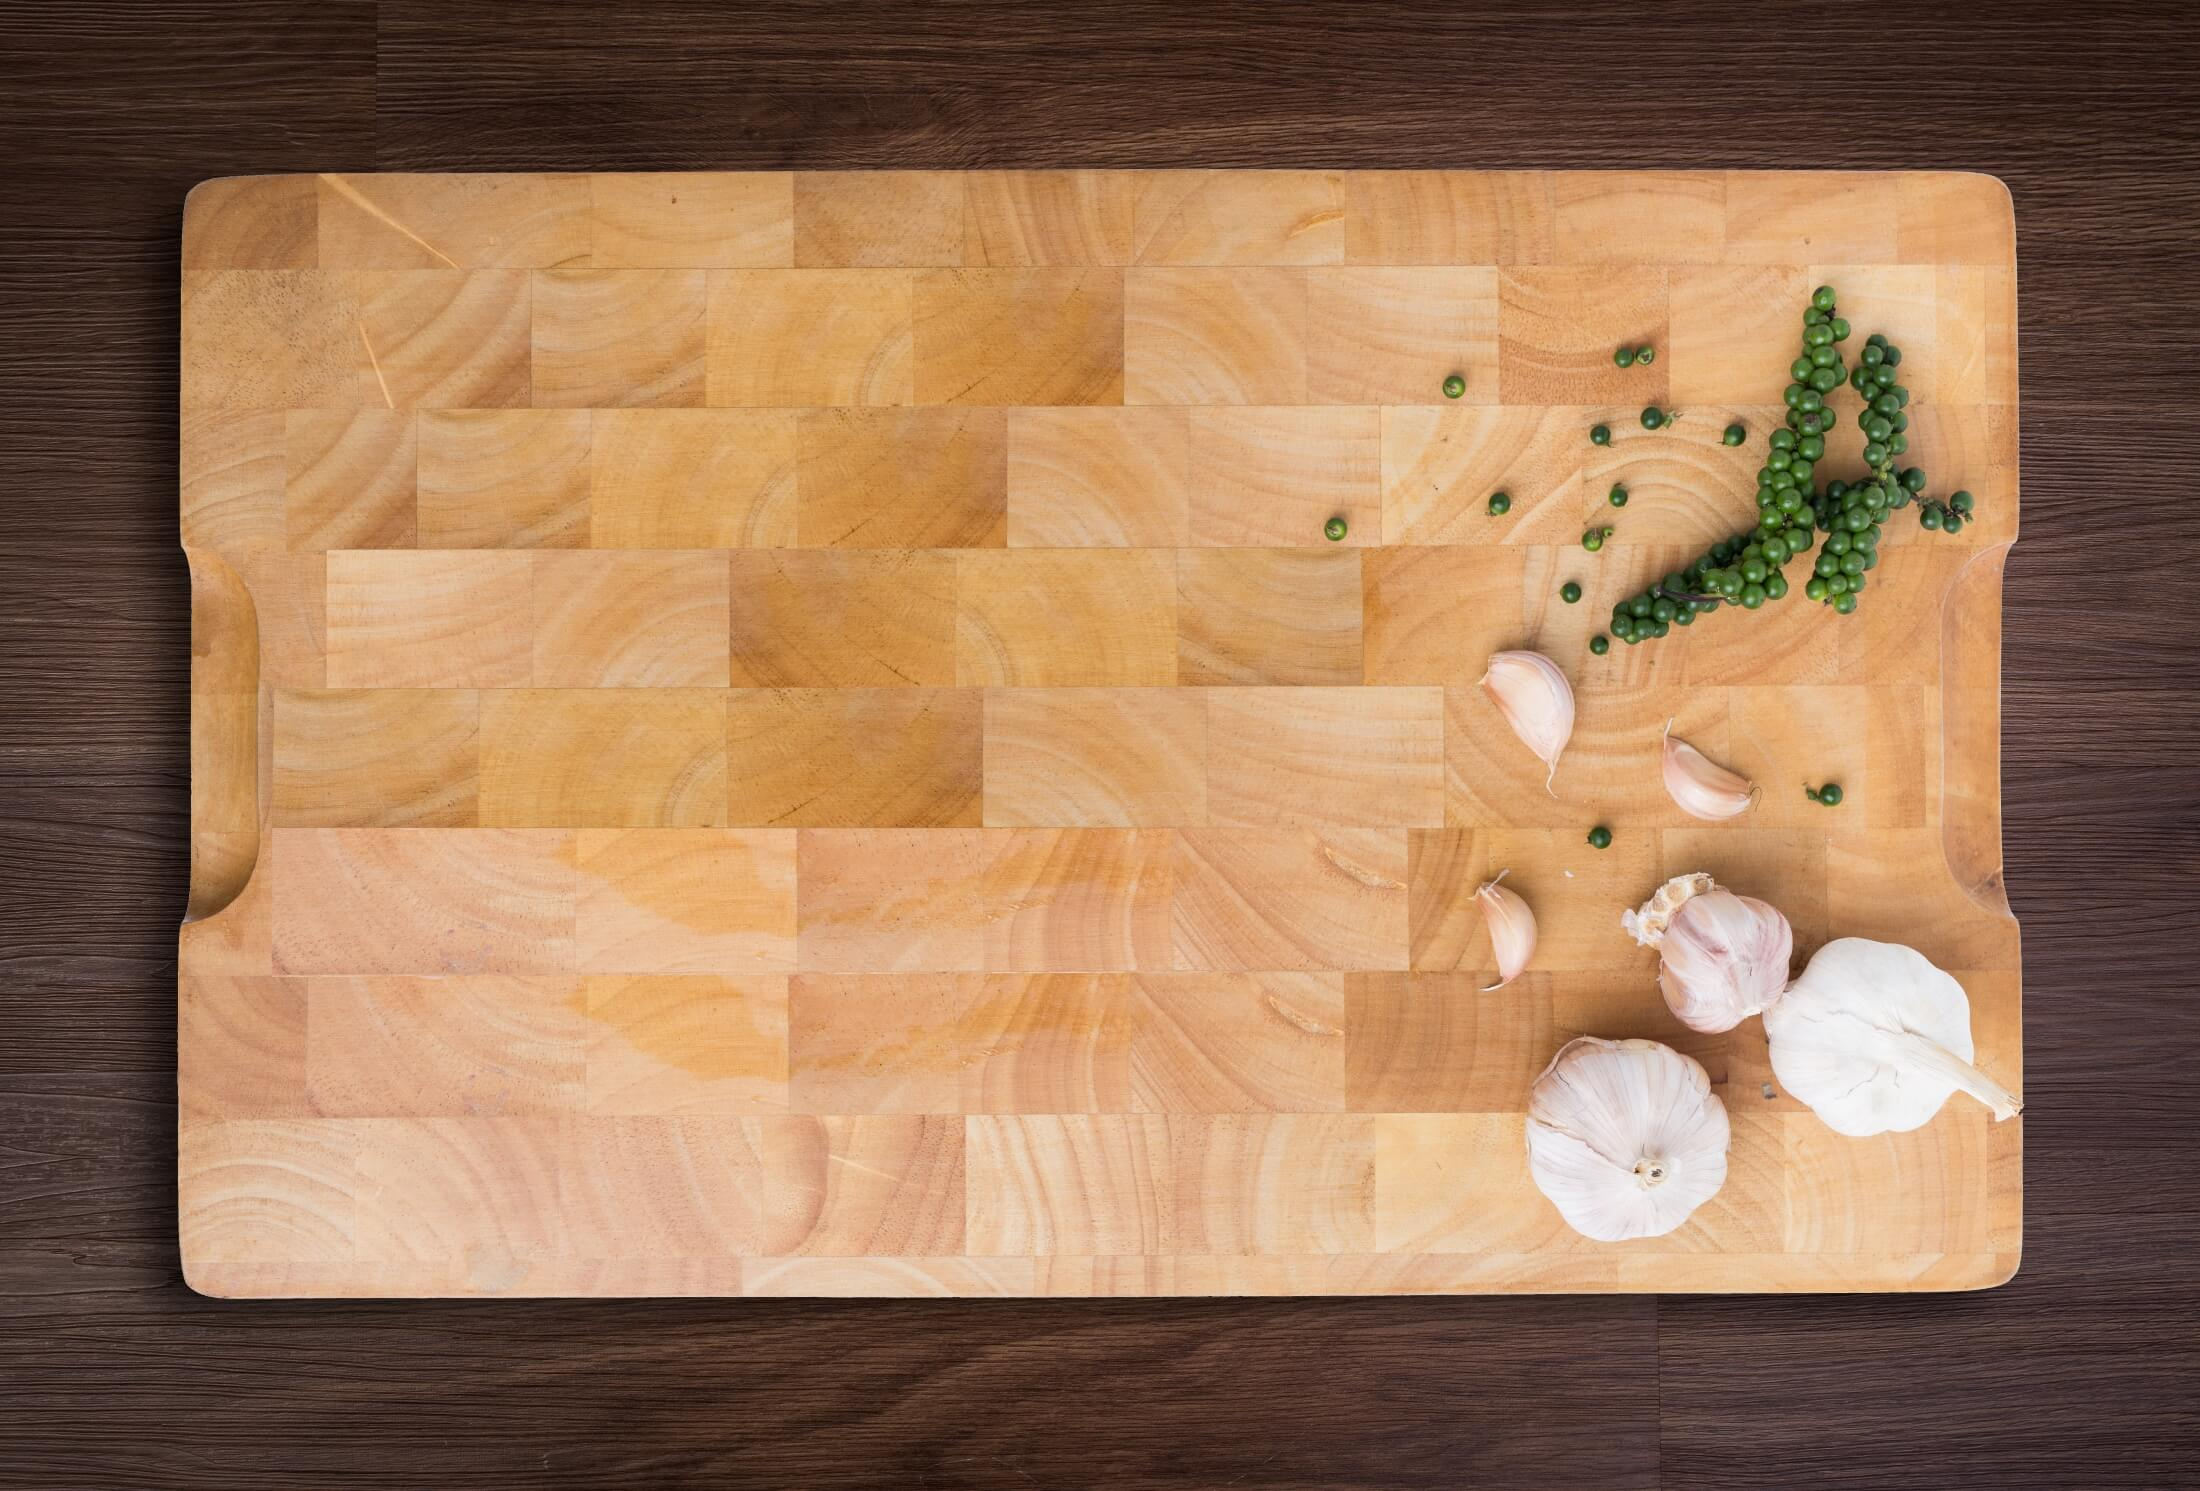 Cutting boards can actually last a long time